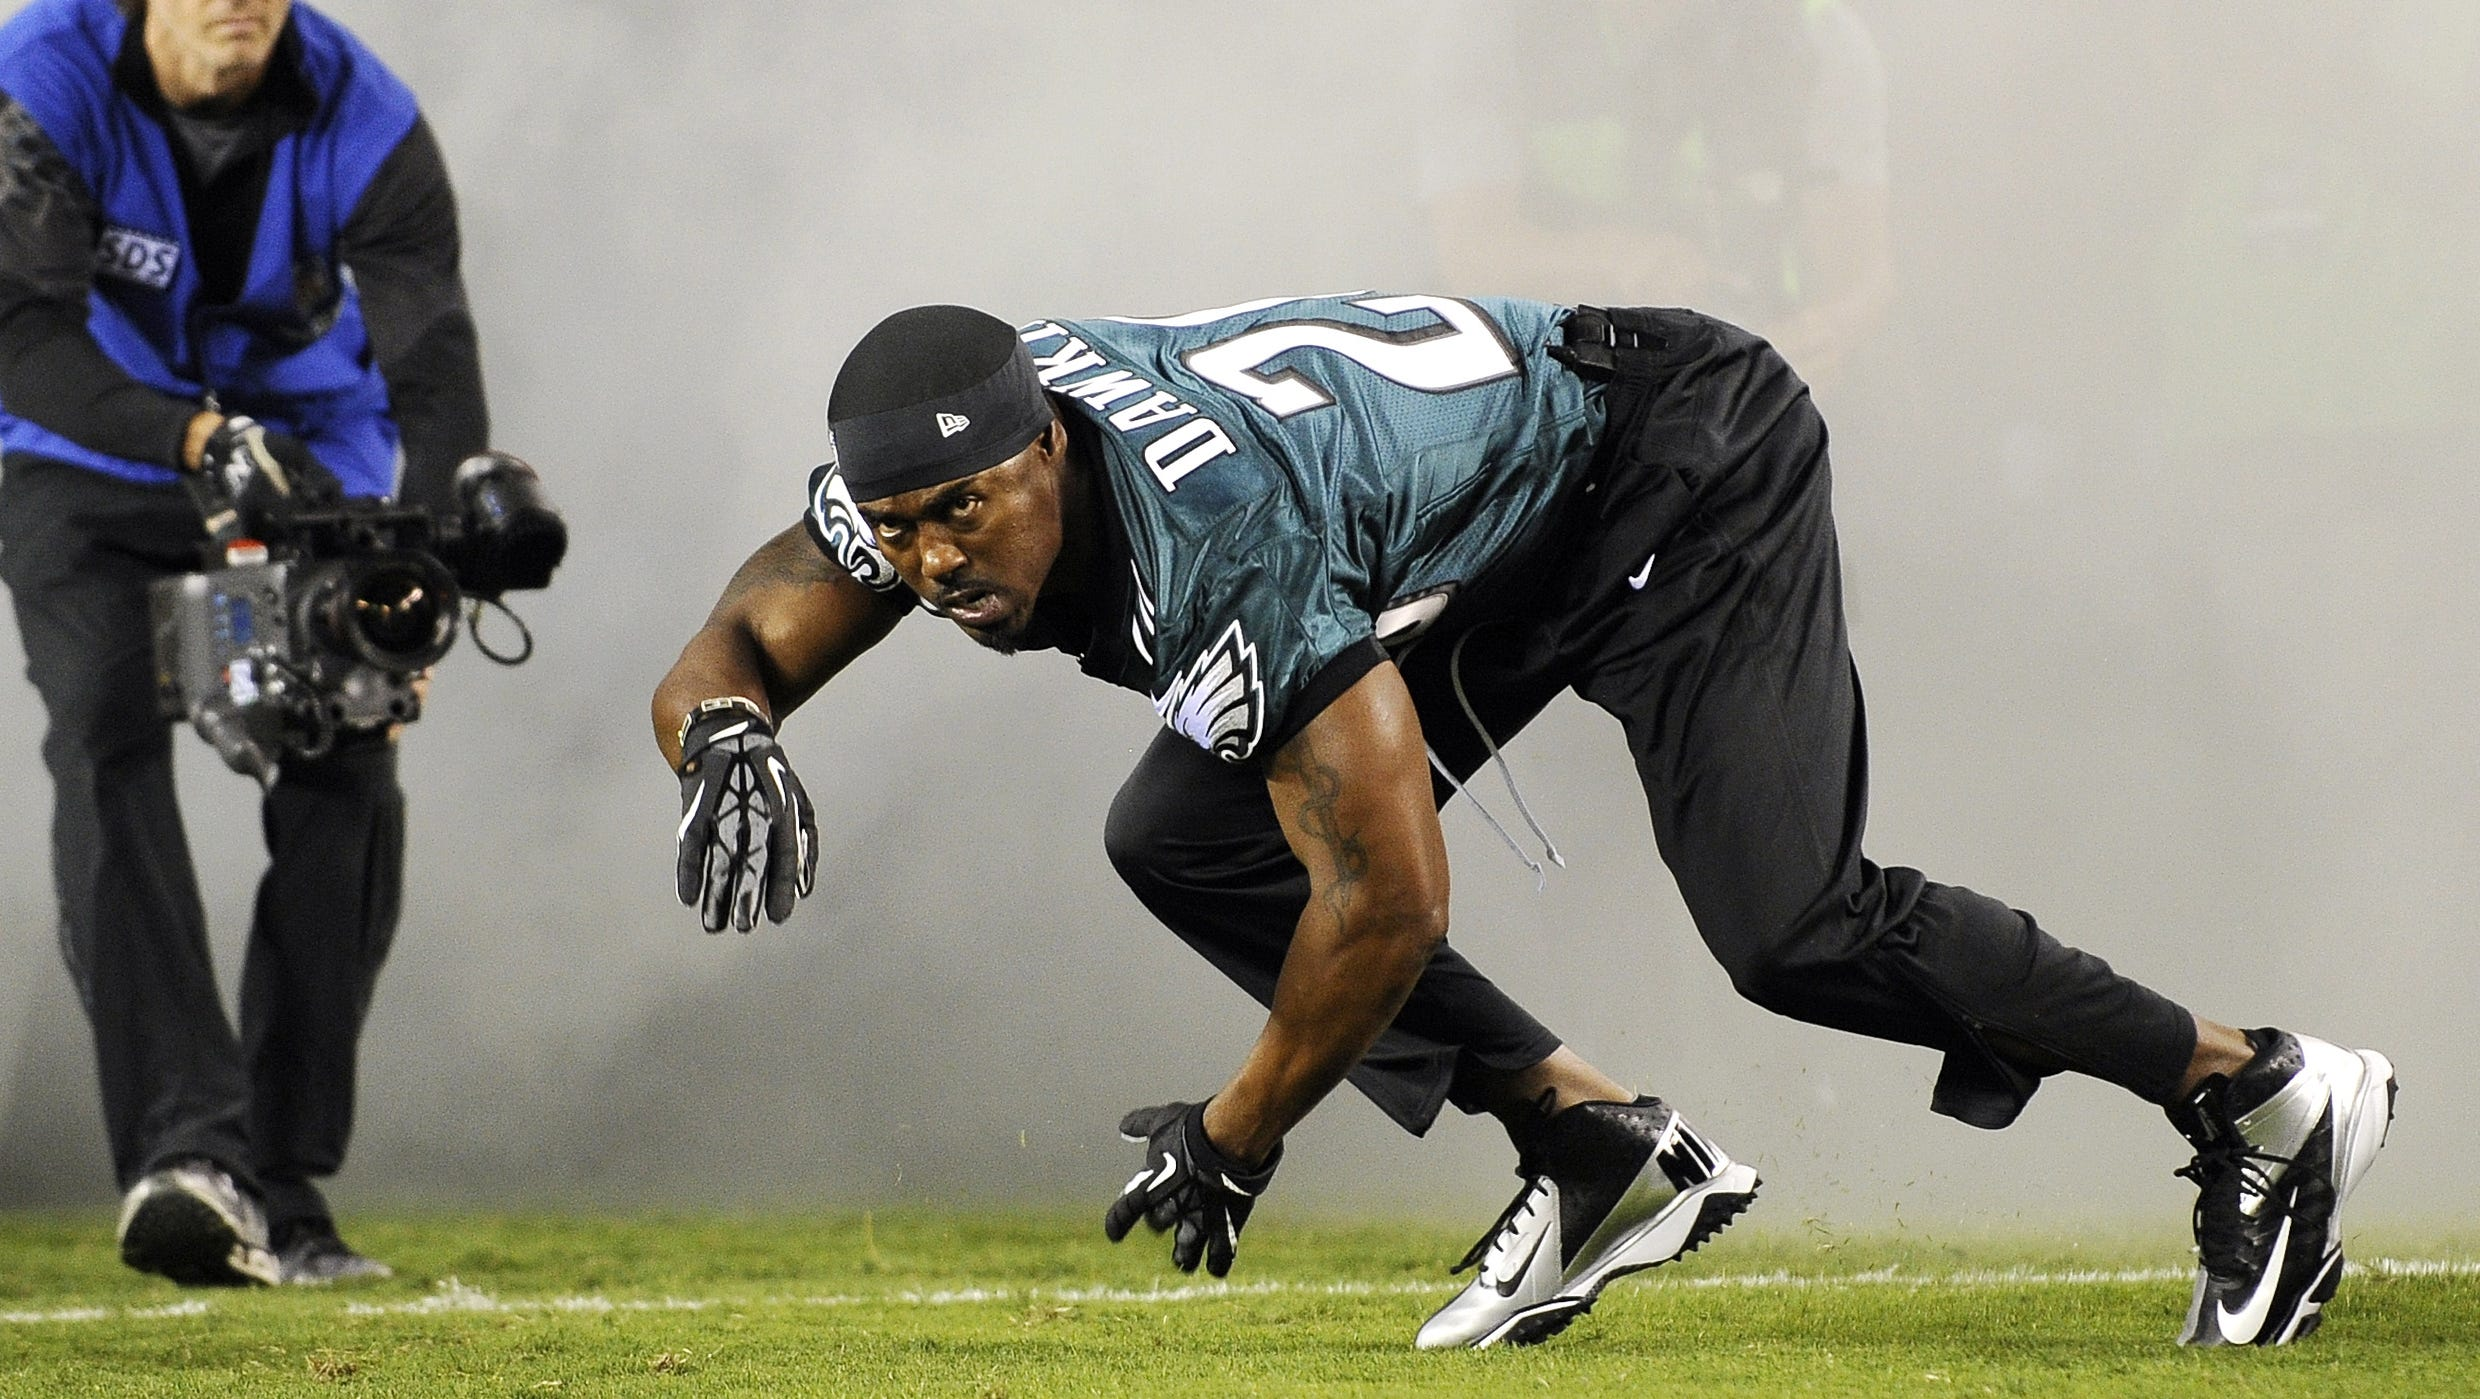 Brian Dawkins does pregame dance for Eagles before getting No. 20 ...